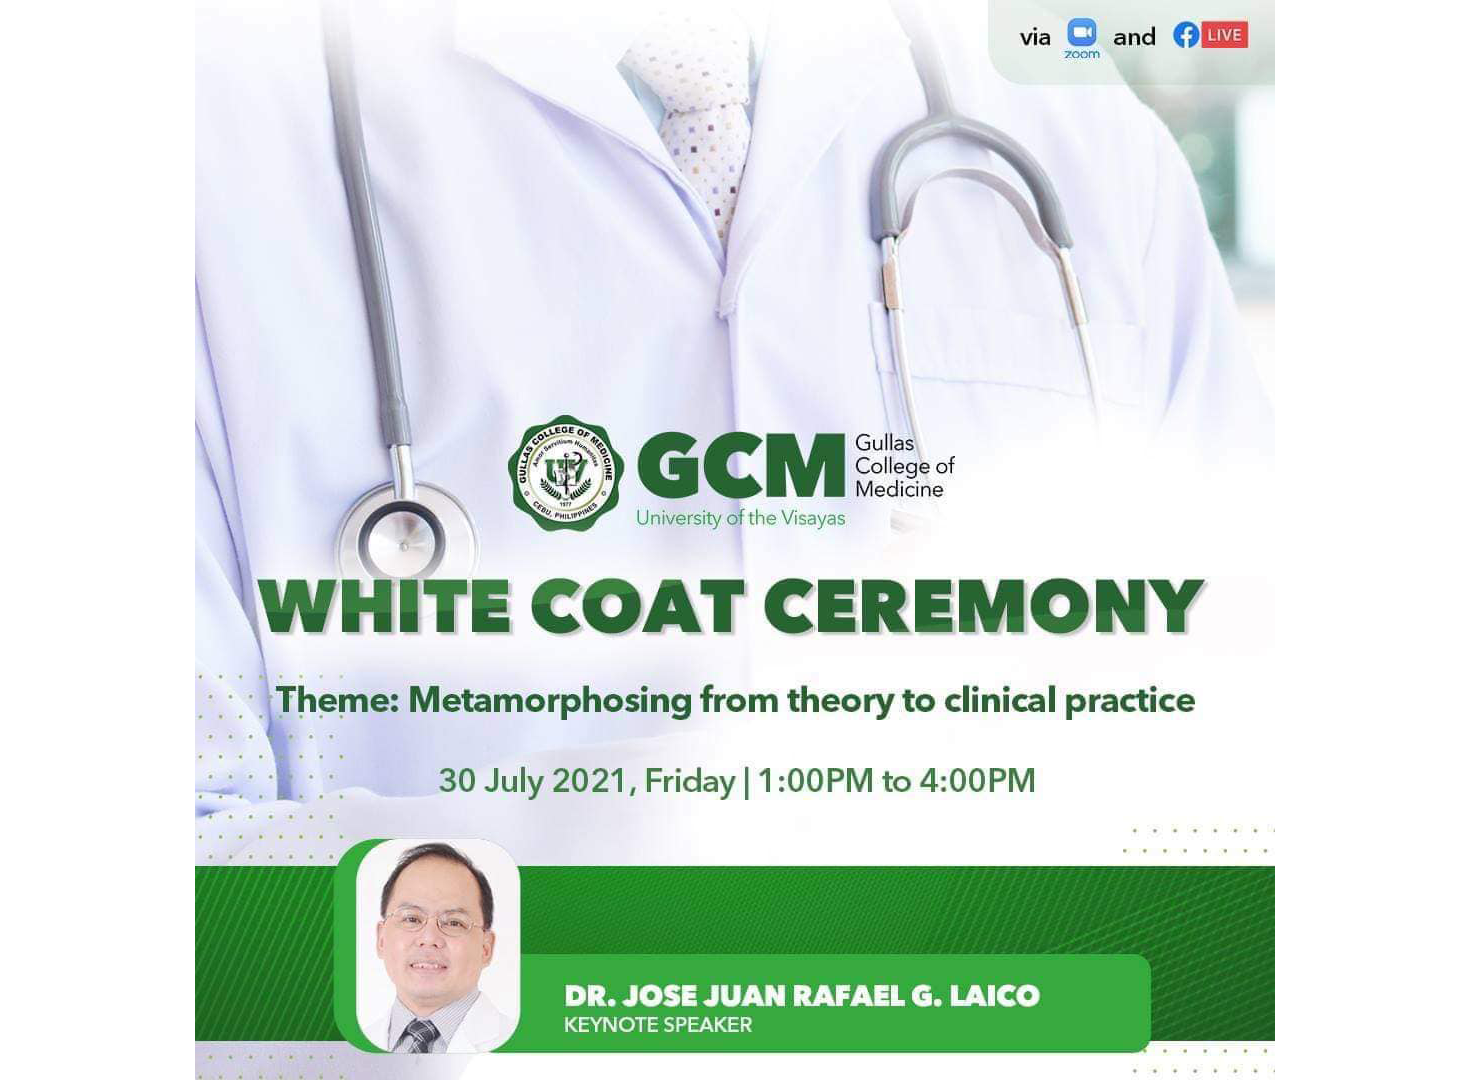 GCM holds its first virtual White Coat Ceremony